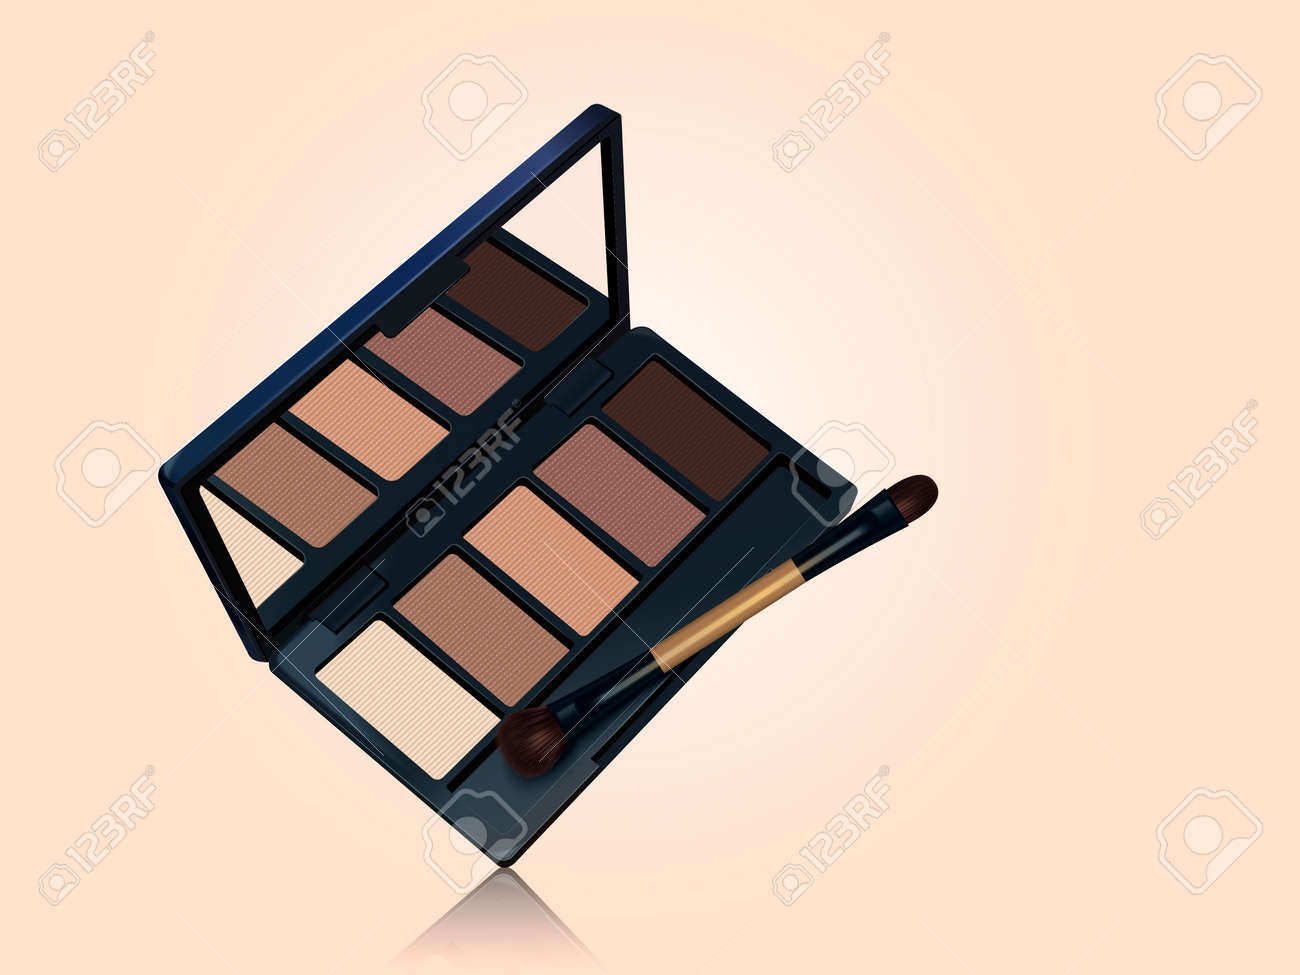 Eye shadow palette mockup, brown color tone makeup tools isolated on complexion background in 3d